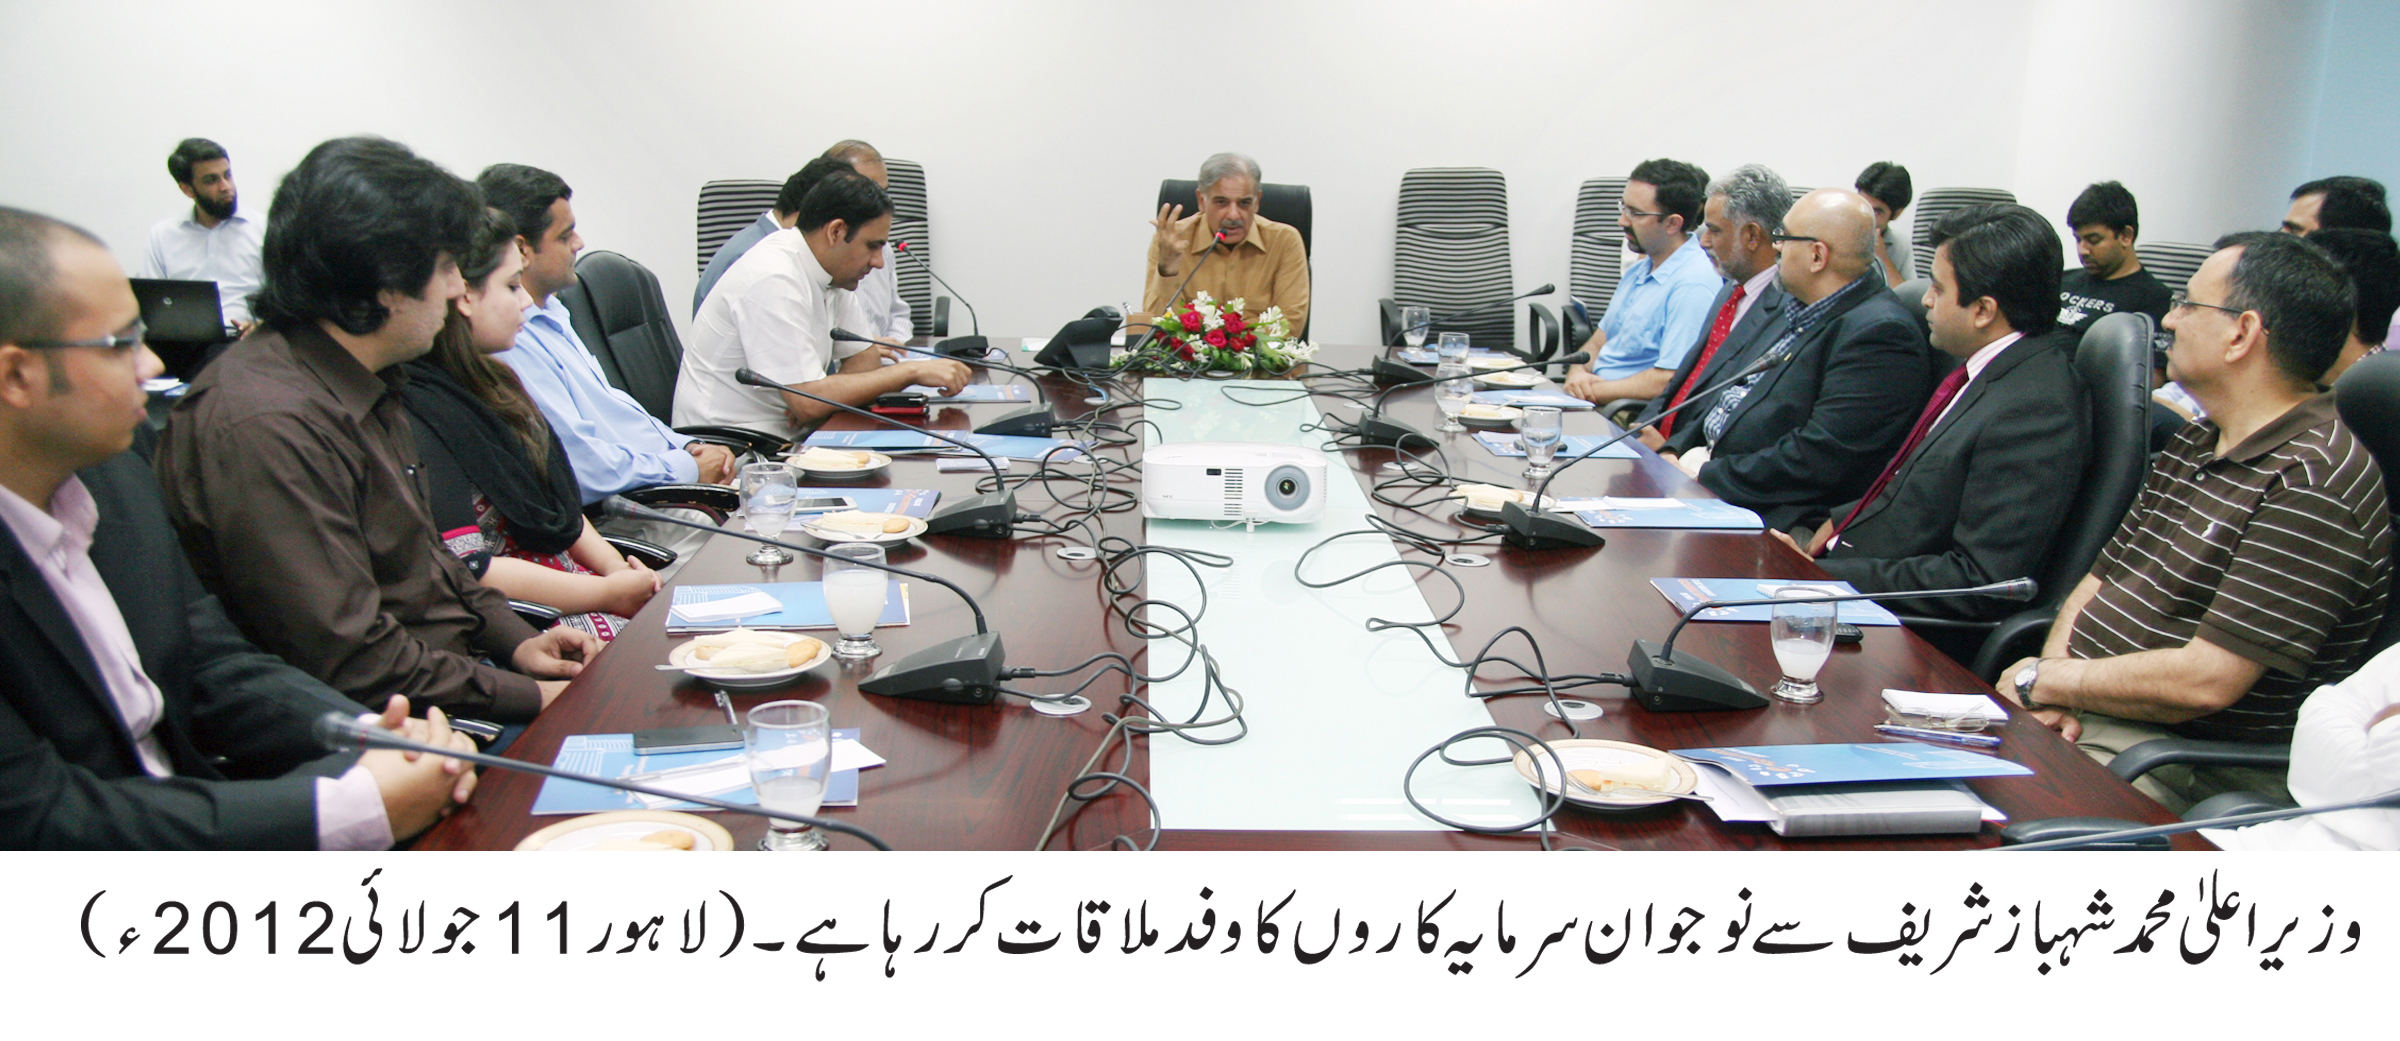 Khurram Zafar and other entrepreneurs meeting with Chief Minister of Punjab